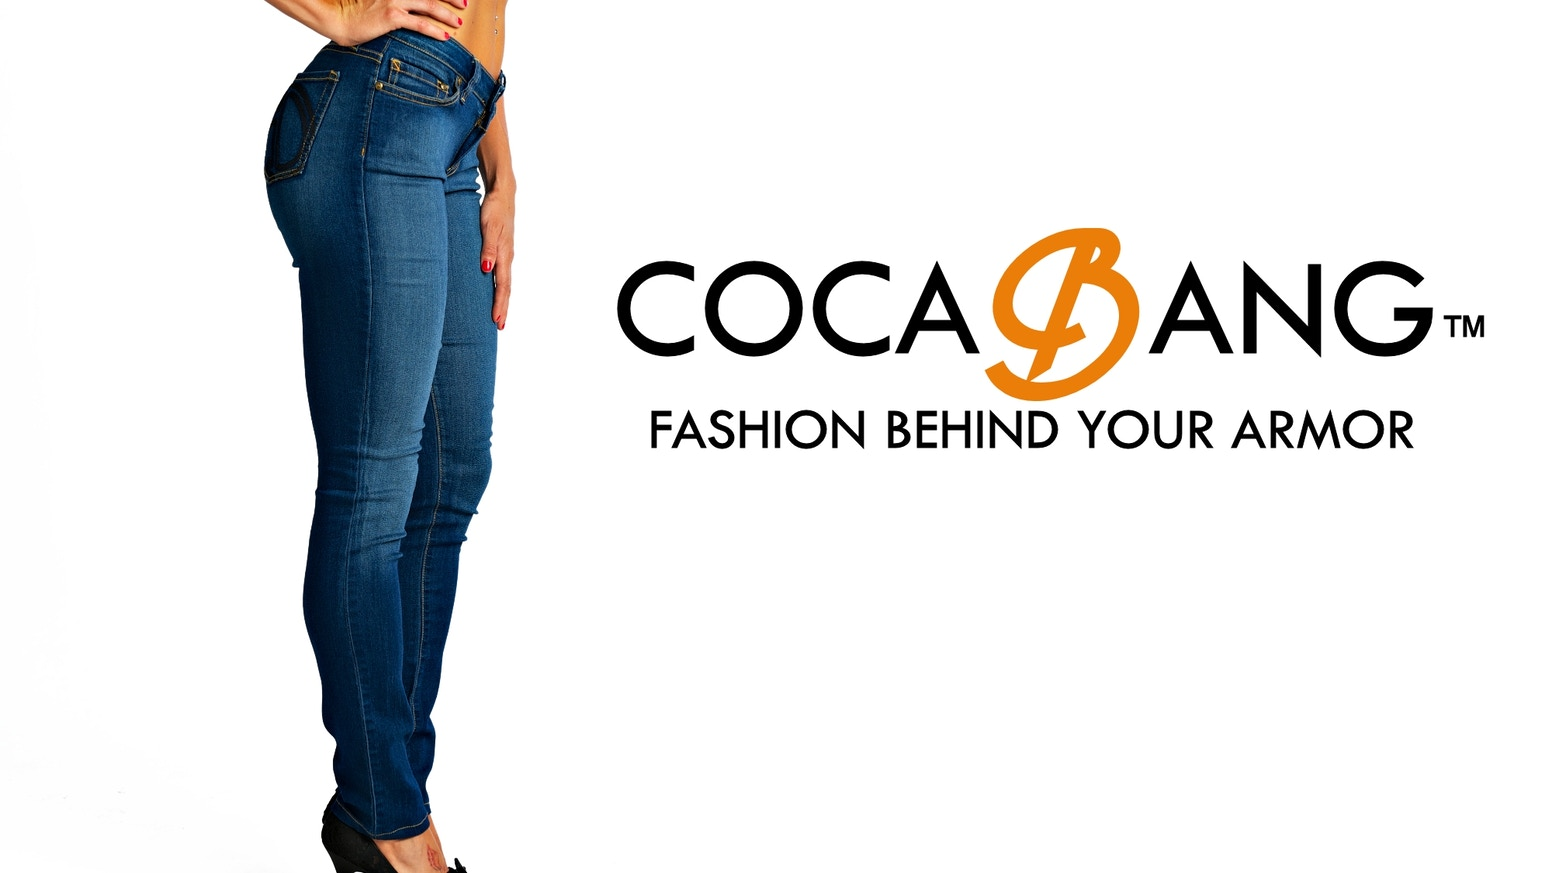 fc54ae1705 COCABANG - Fiercely Feminine Fashion by COCABANG — Kickstarter